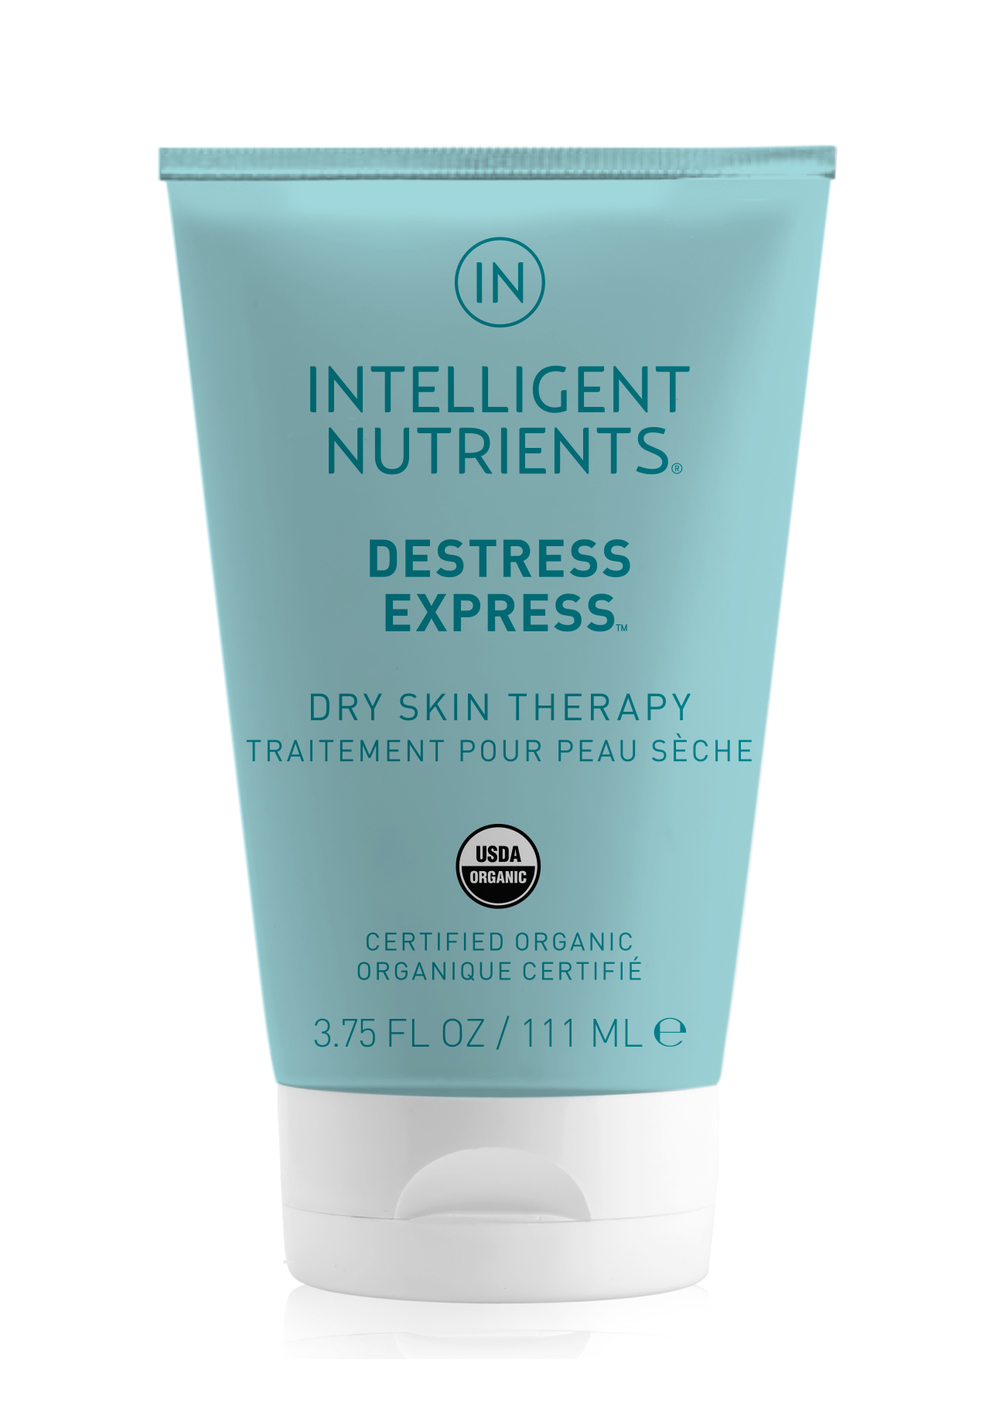 Destress Express™ Dry Skin Therapy (DKK240/111ml)